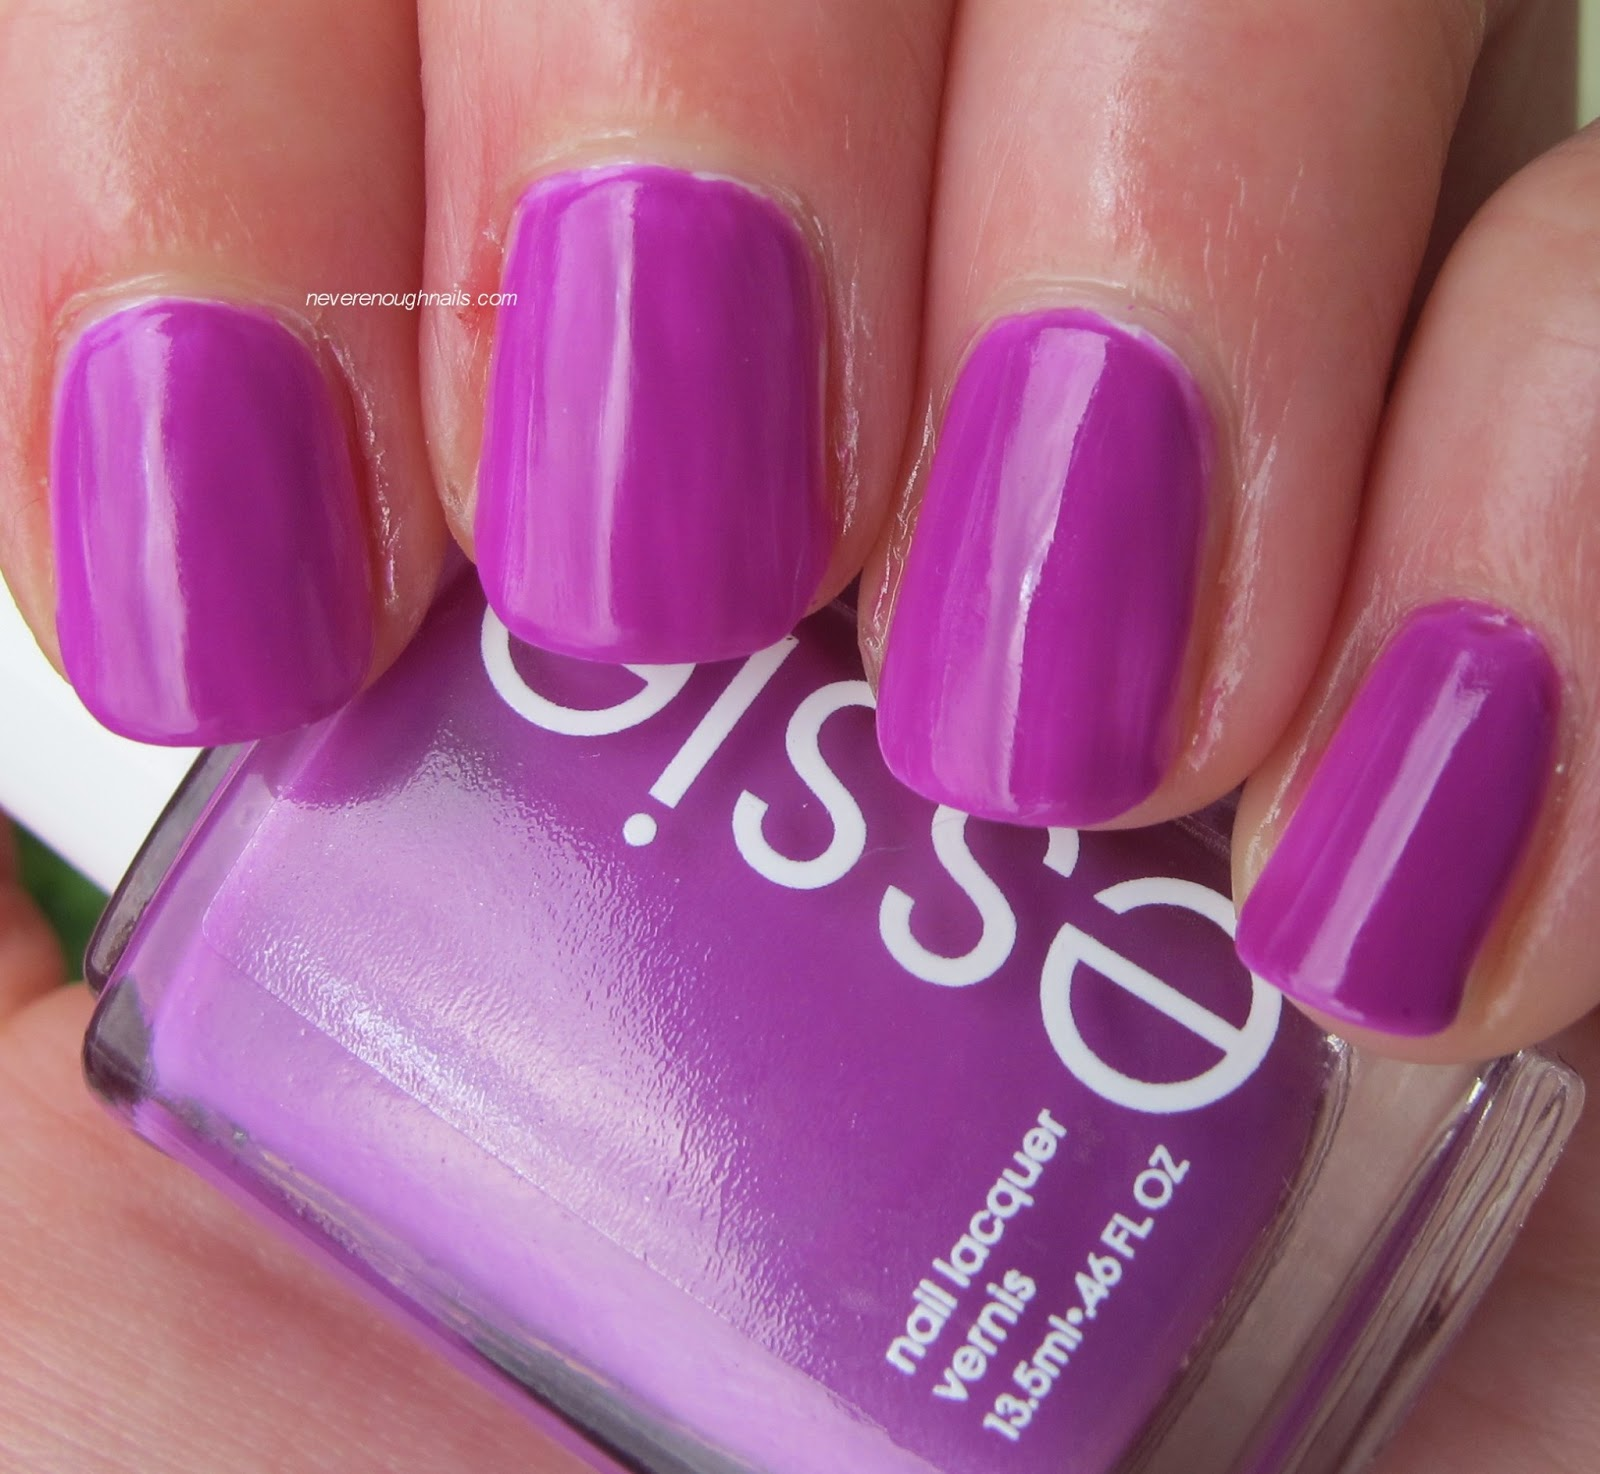 Never Enough Nails: Essie DJ Play That Song